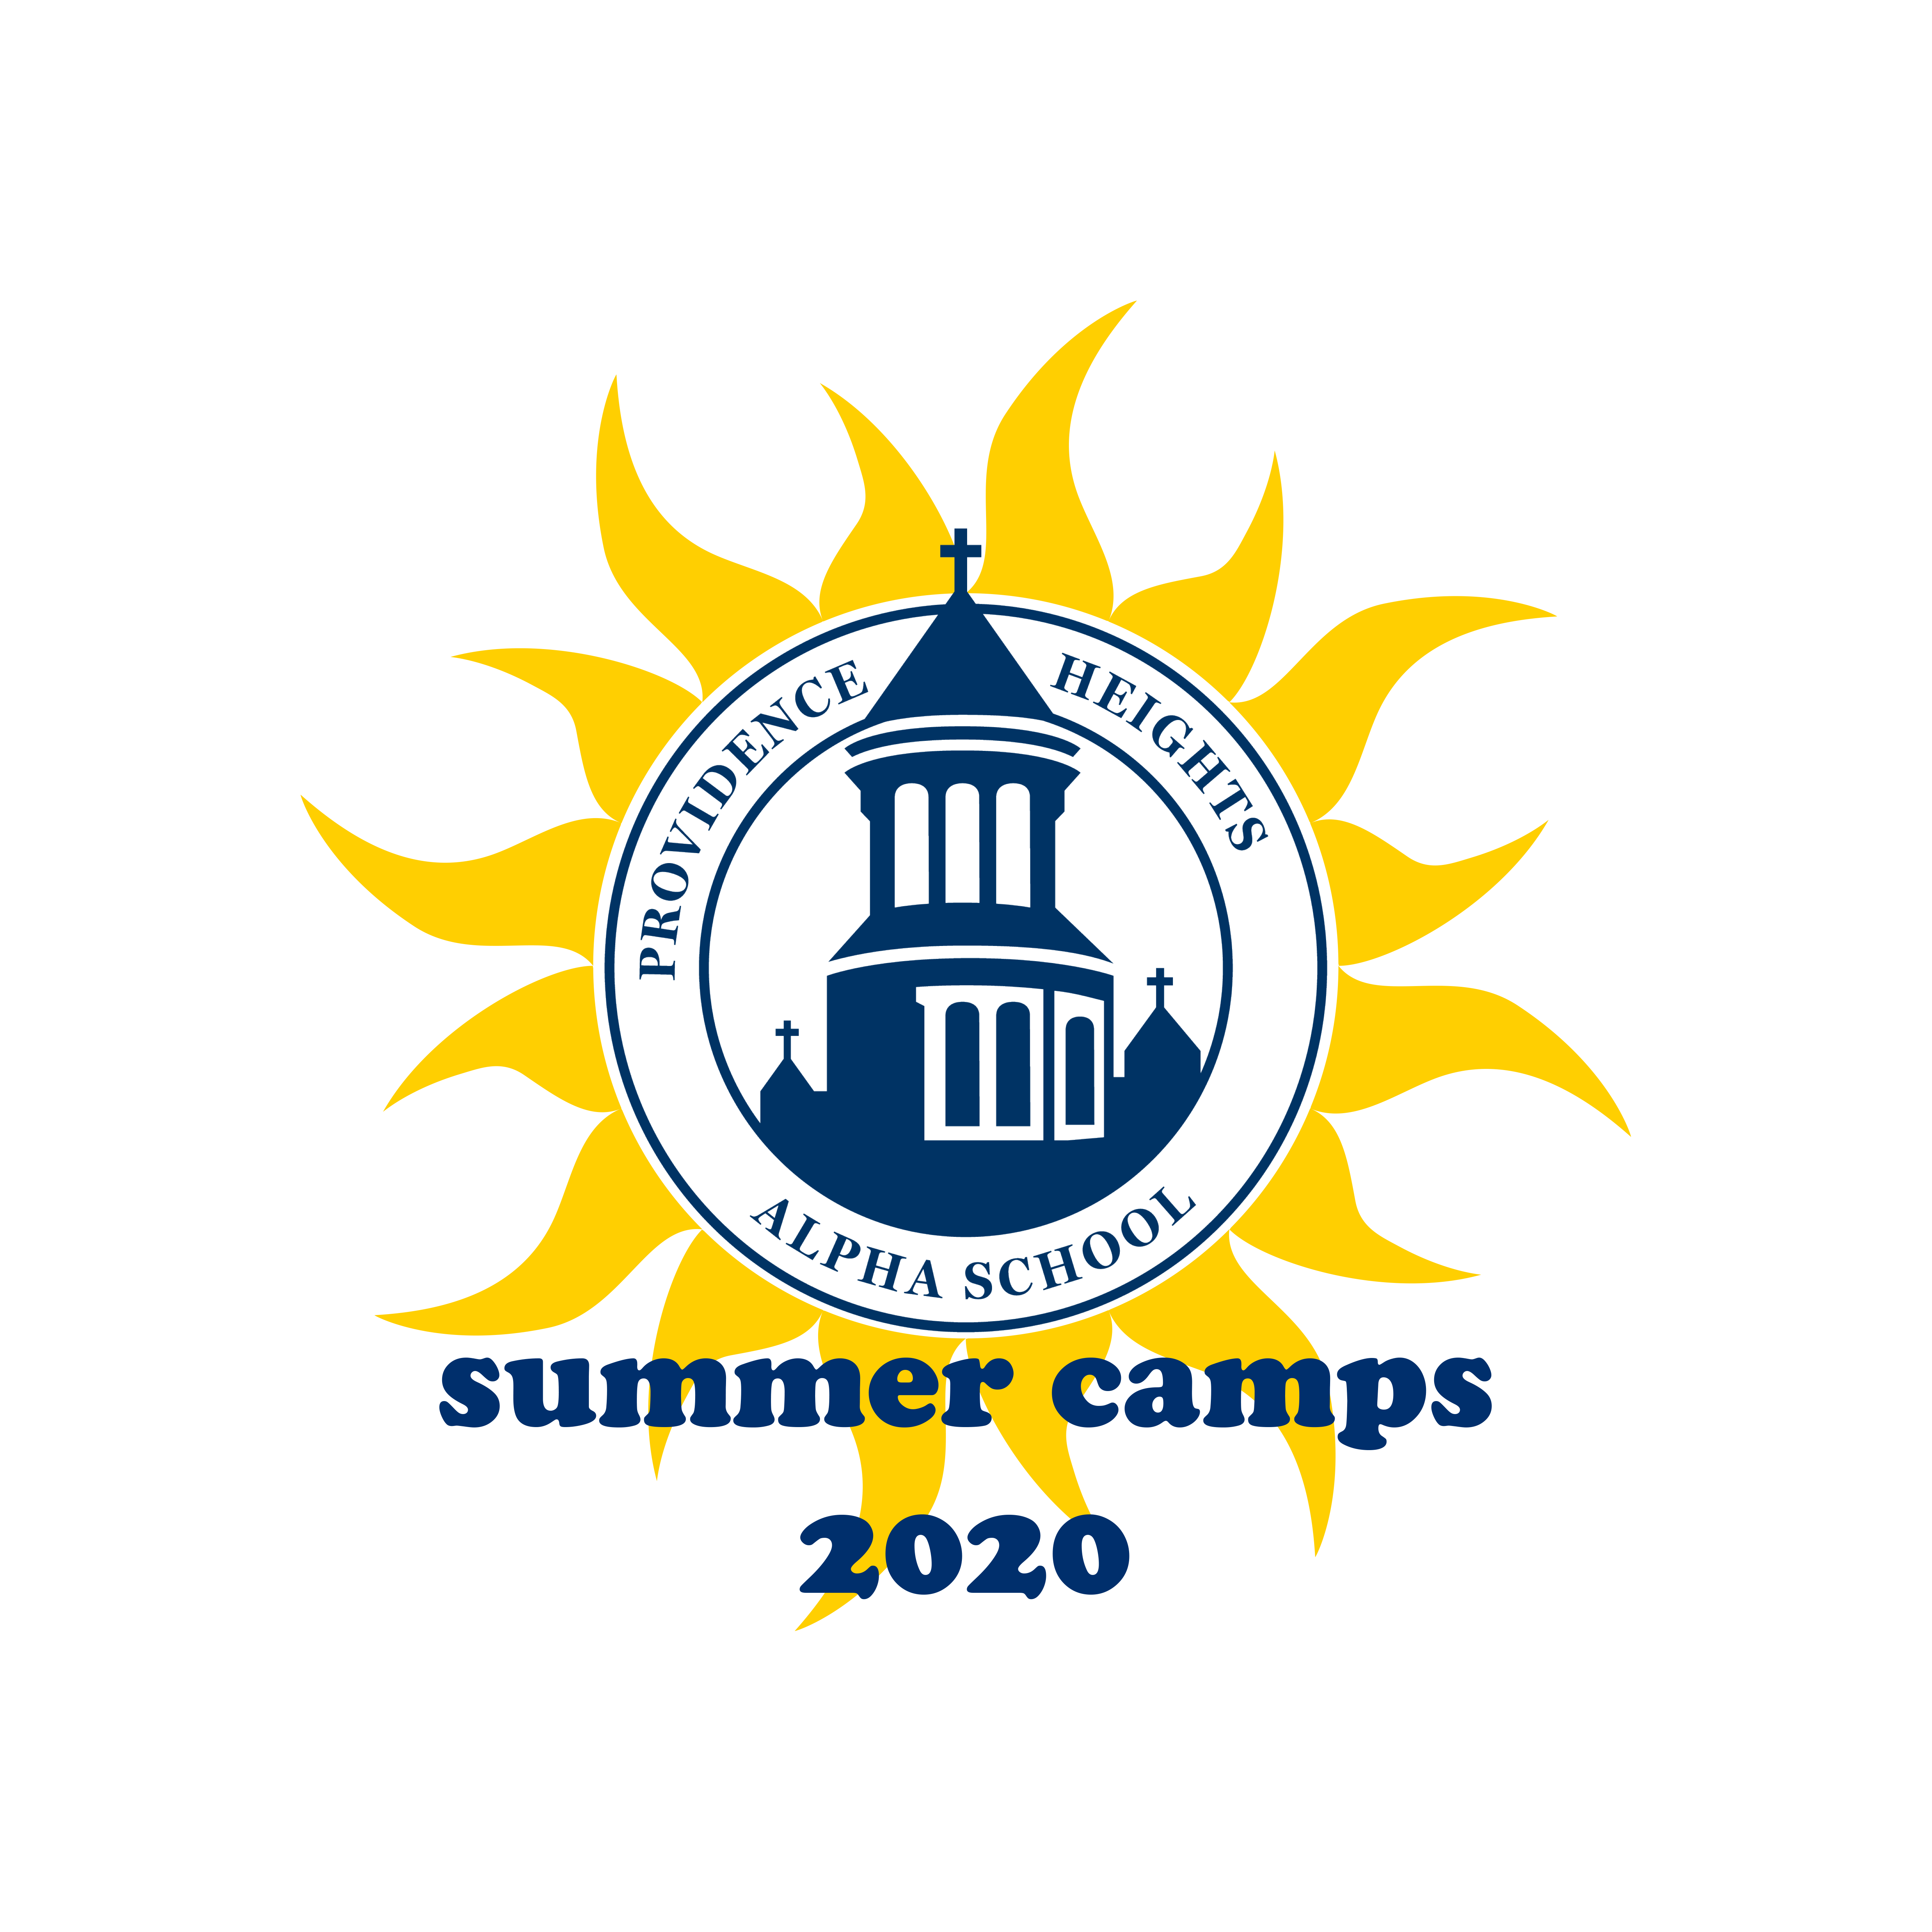 NEW summer camp logo 2020 with border